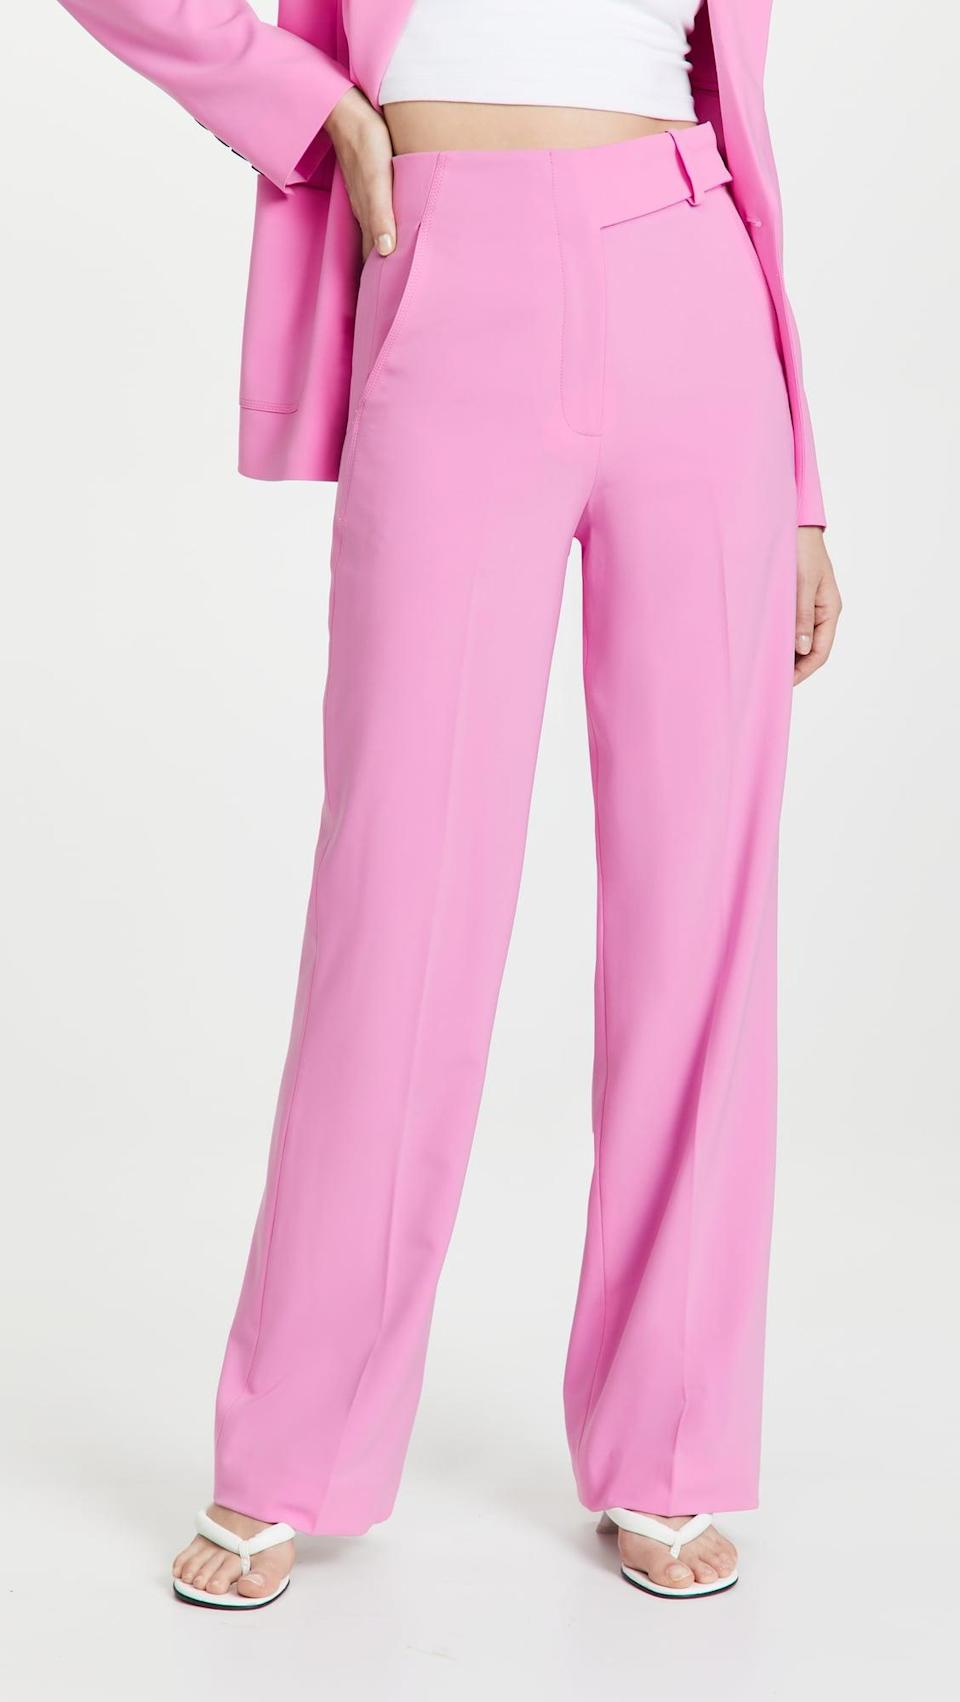 <p>If you're looking for something vibrant this fall, we suggest the <span>Jonathan Simkhai Sunny Eco Twill Combo Tailored Wide Leg Pants</span> ($495). The hot pink shade will look so cute with sweats and sneakers.</p>